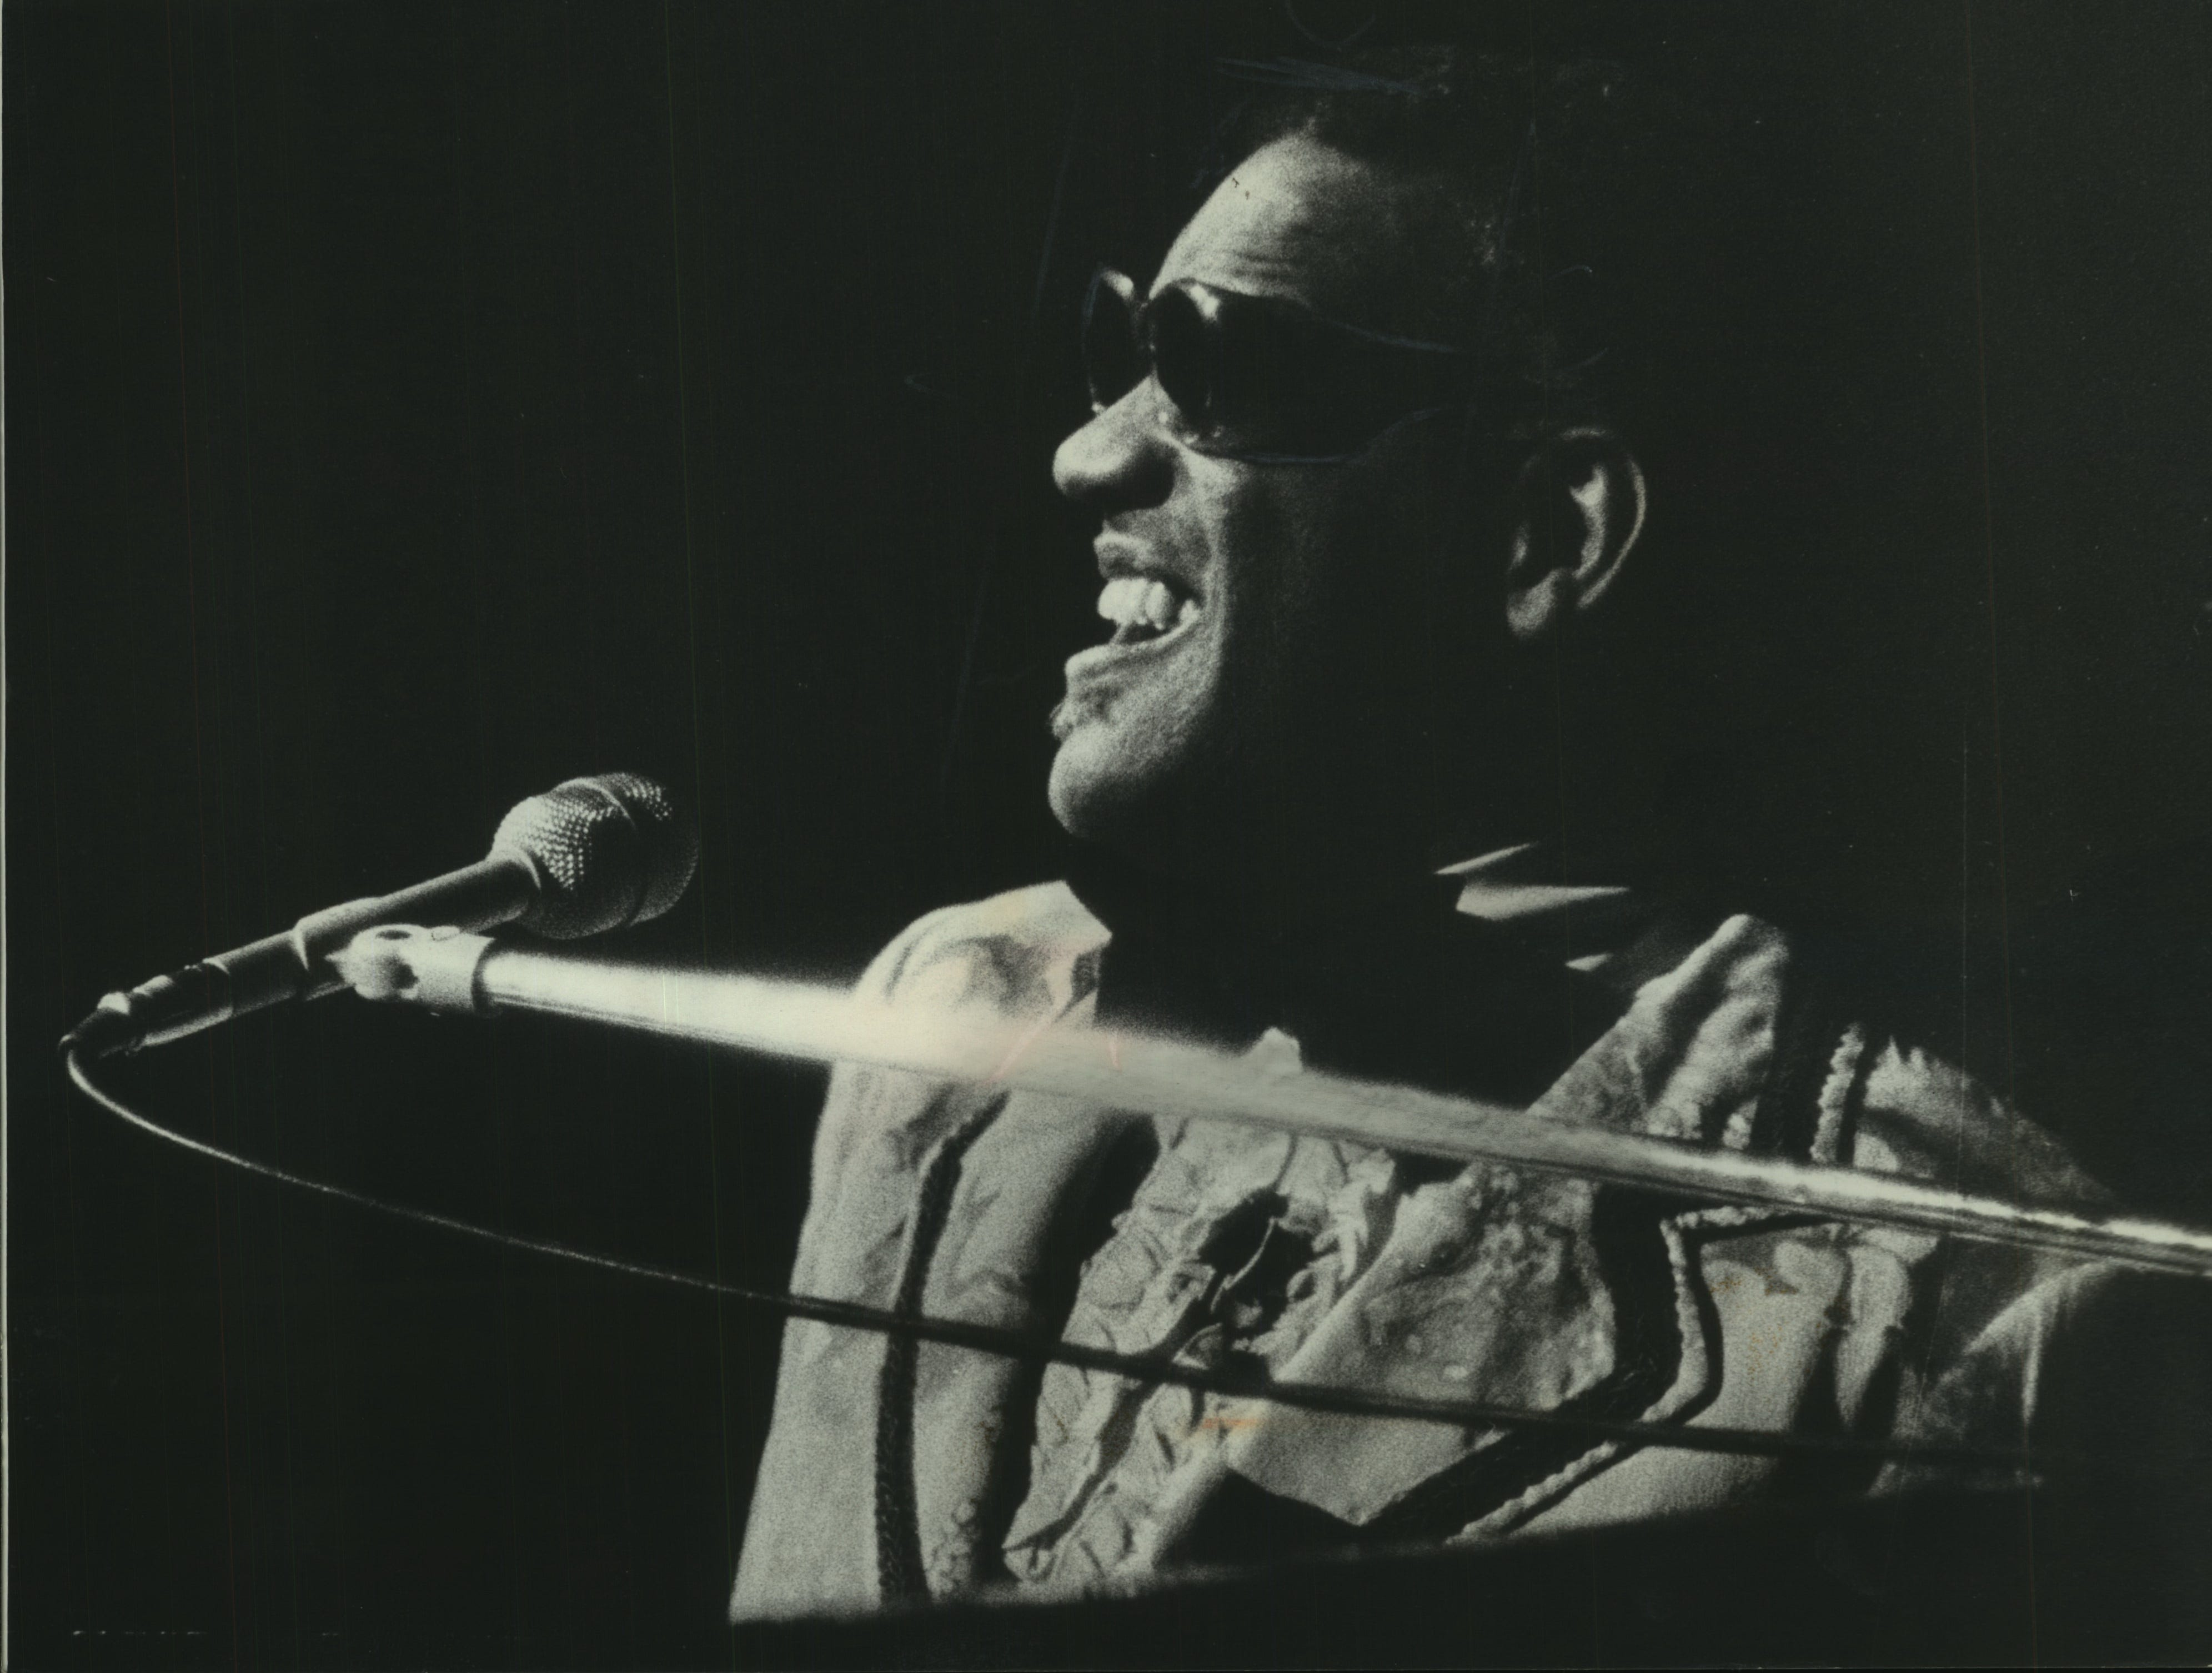 Ray Charles at the PAC (Milwaukee Performing Arts Center)